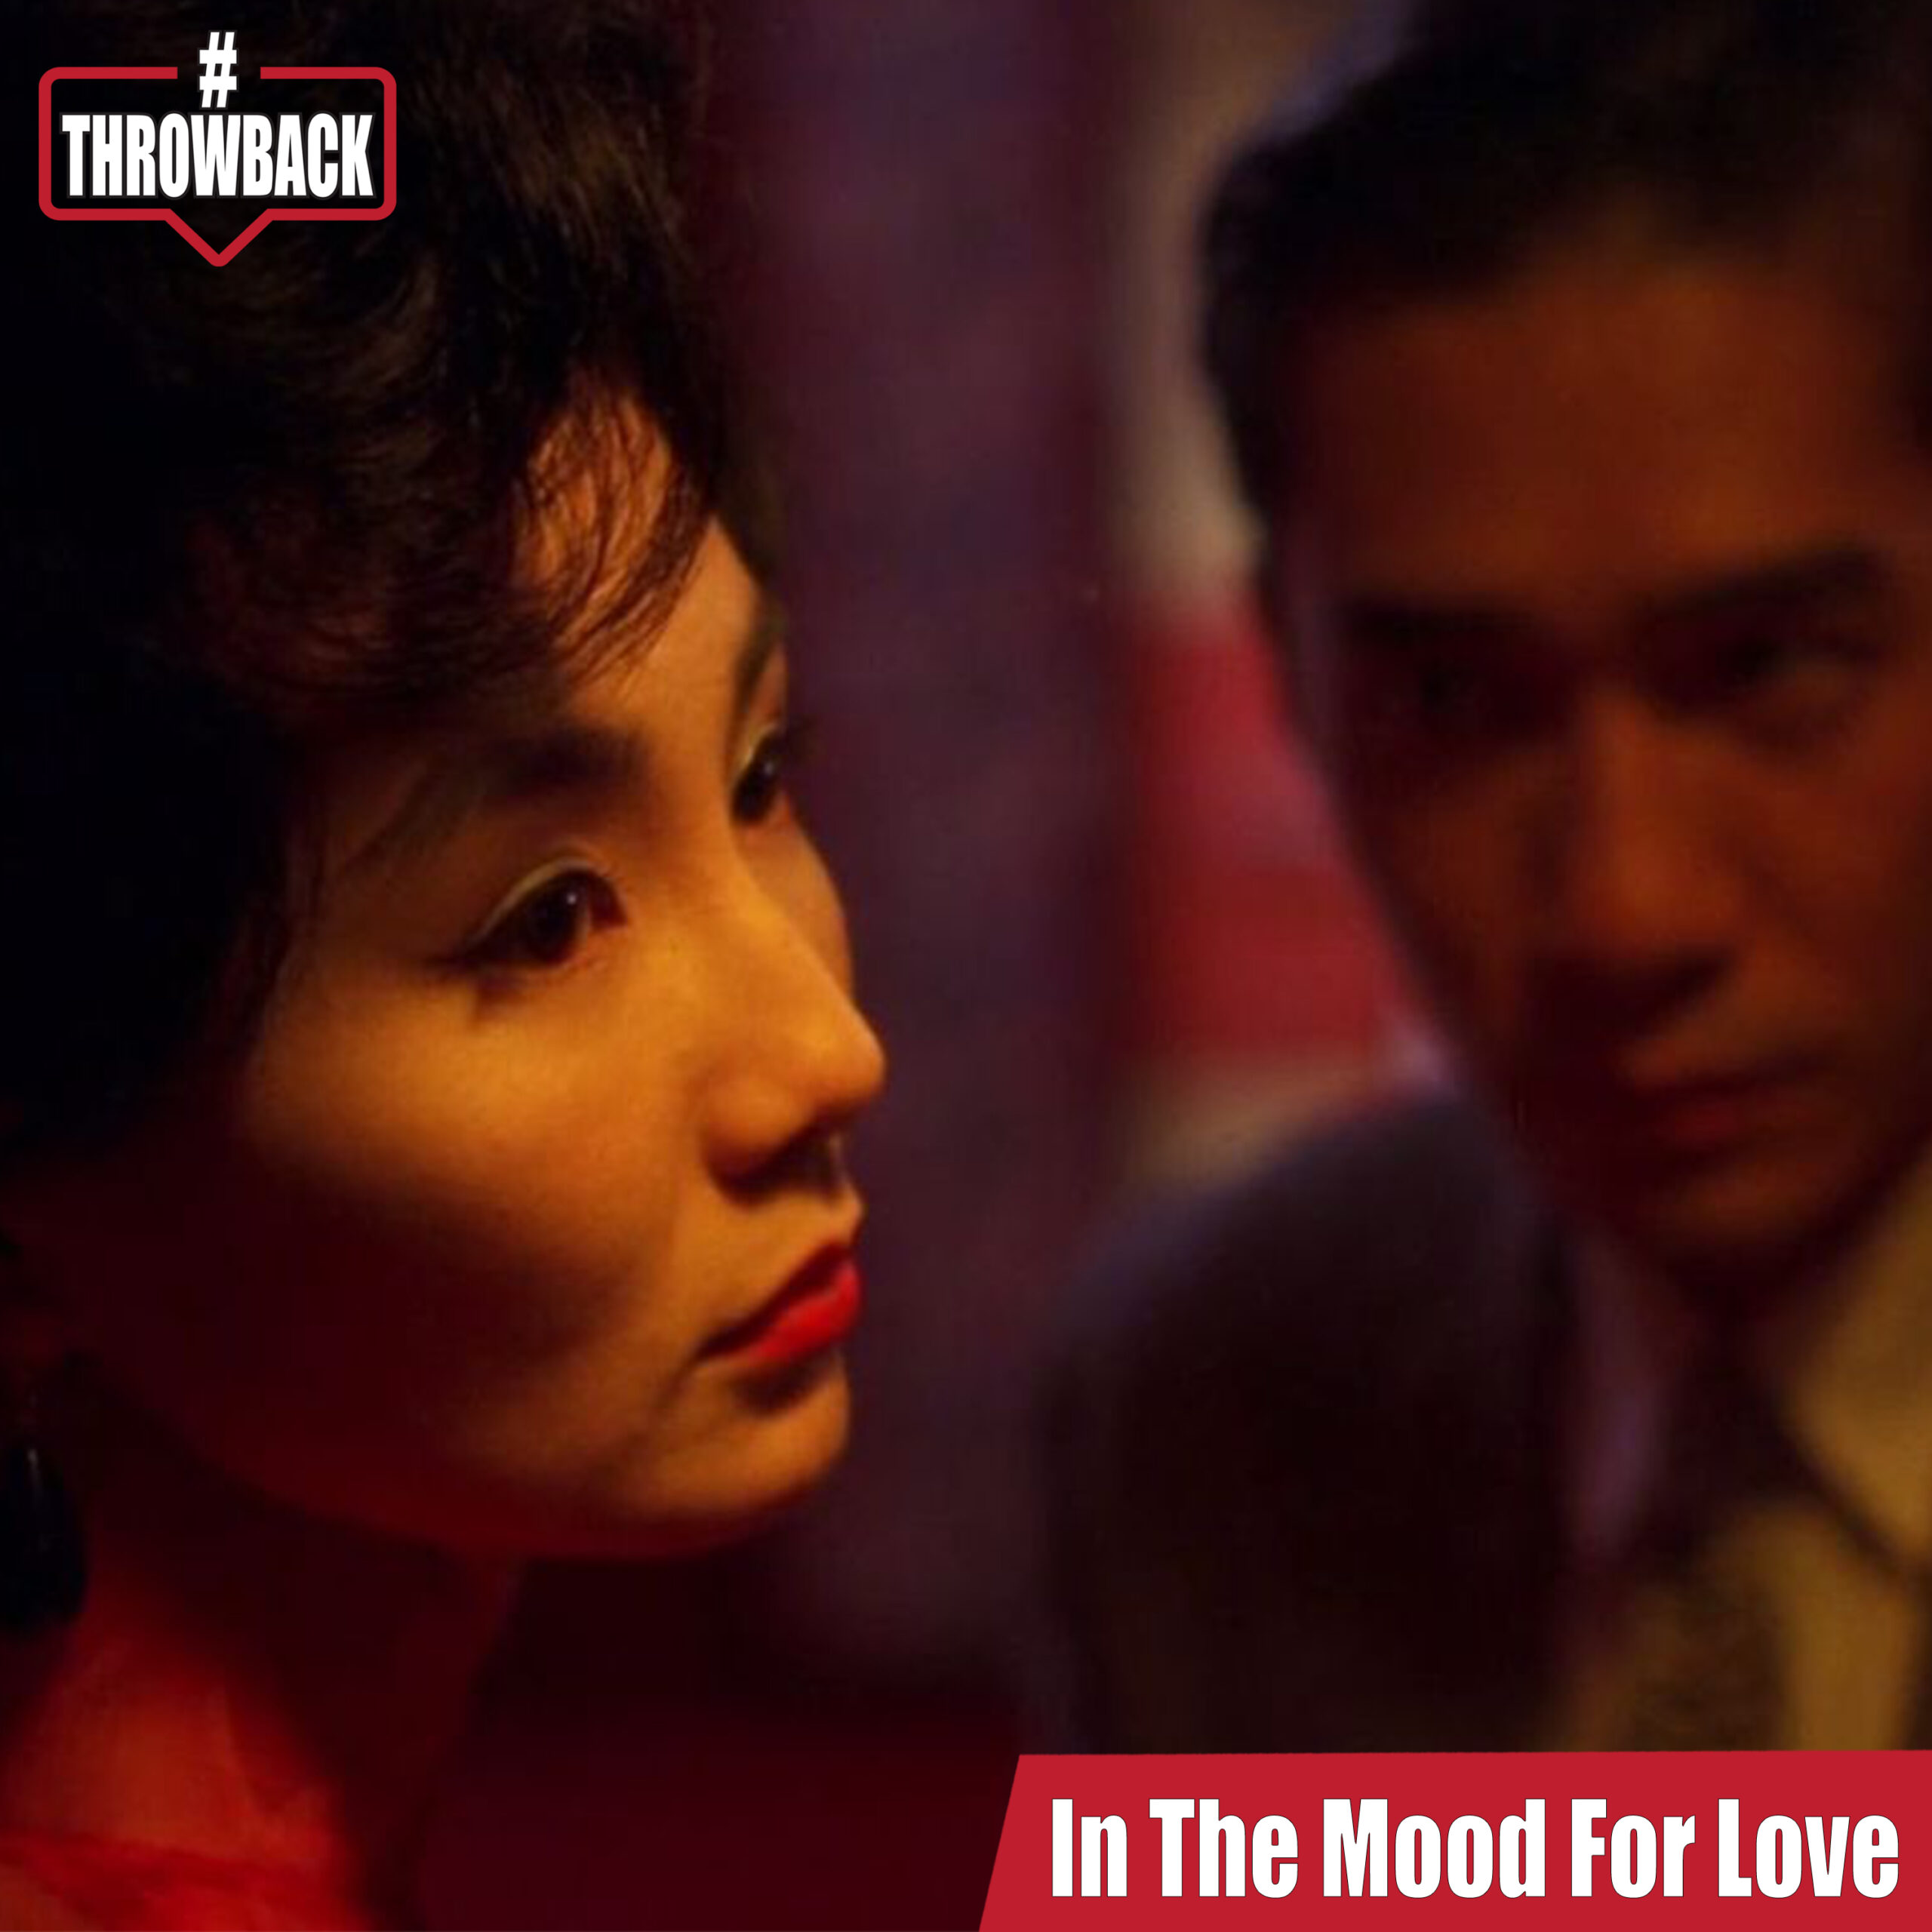 Throwback #43 – In The Mood For Love